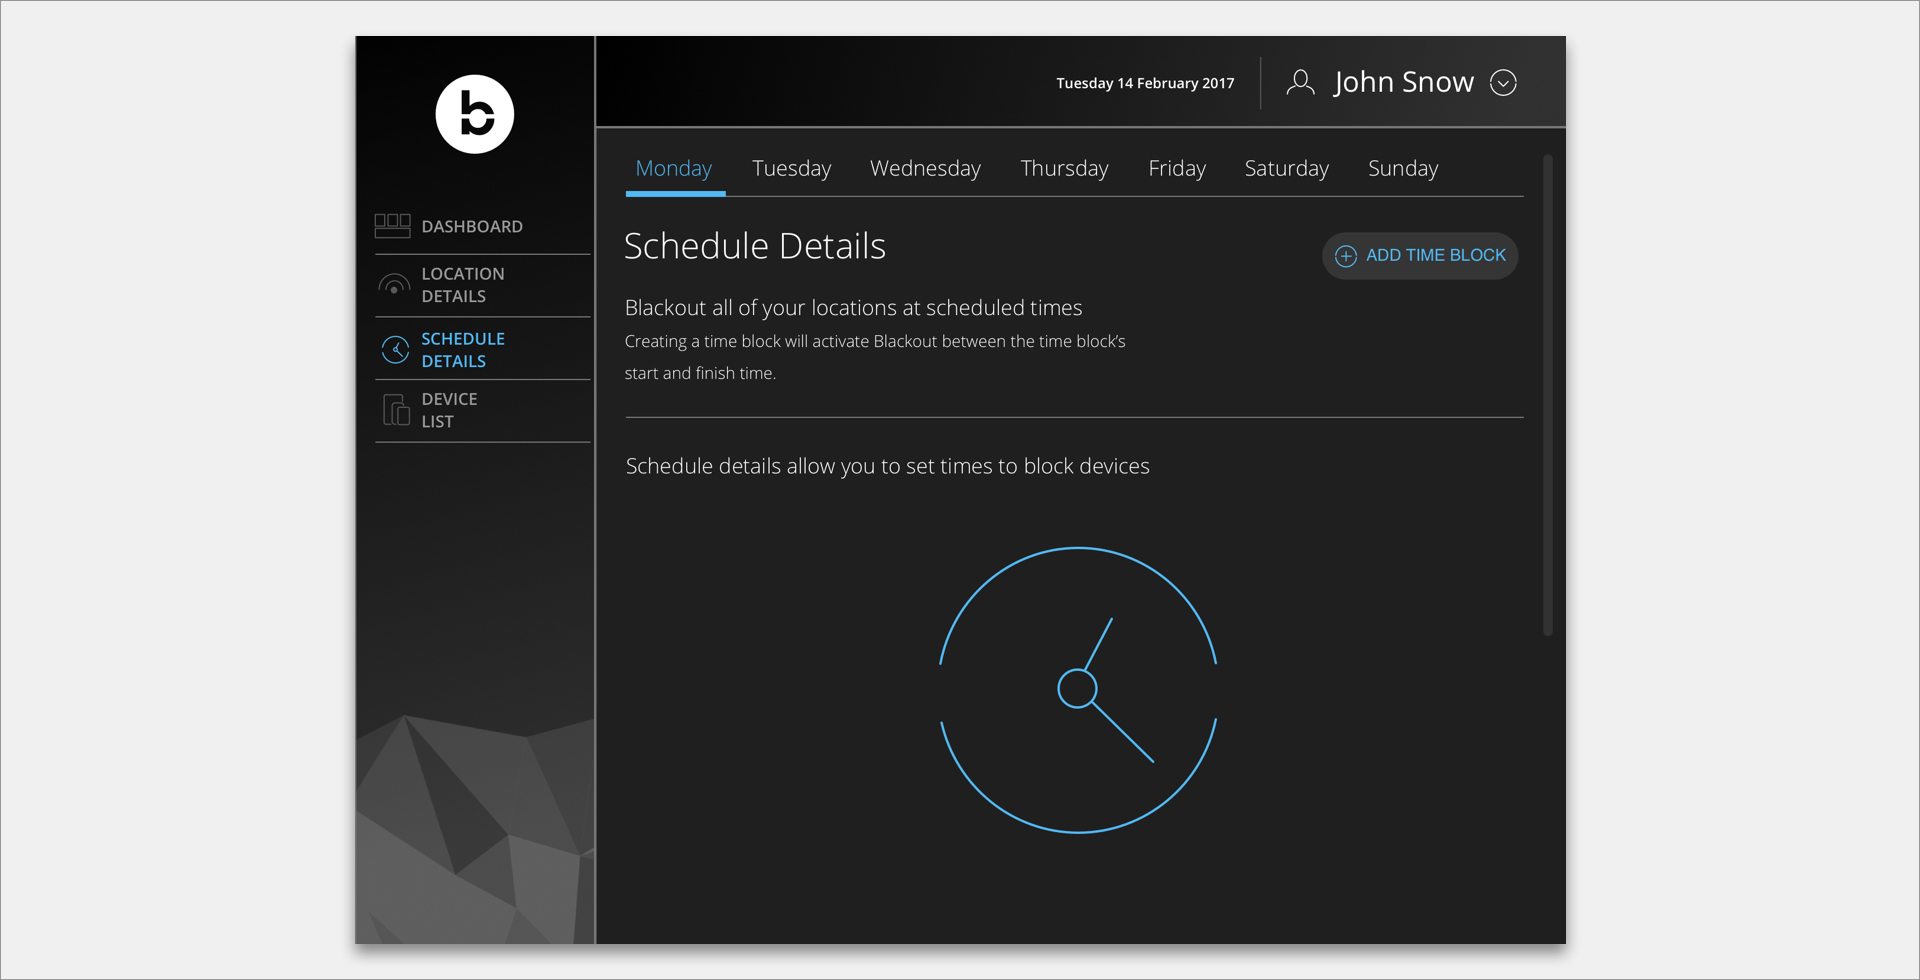 Screenshot from Blackout Technologies web interface